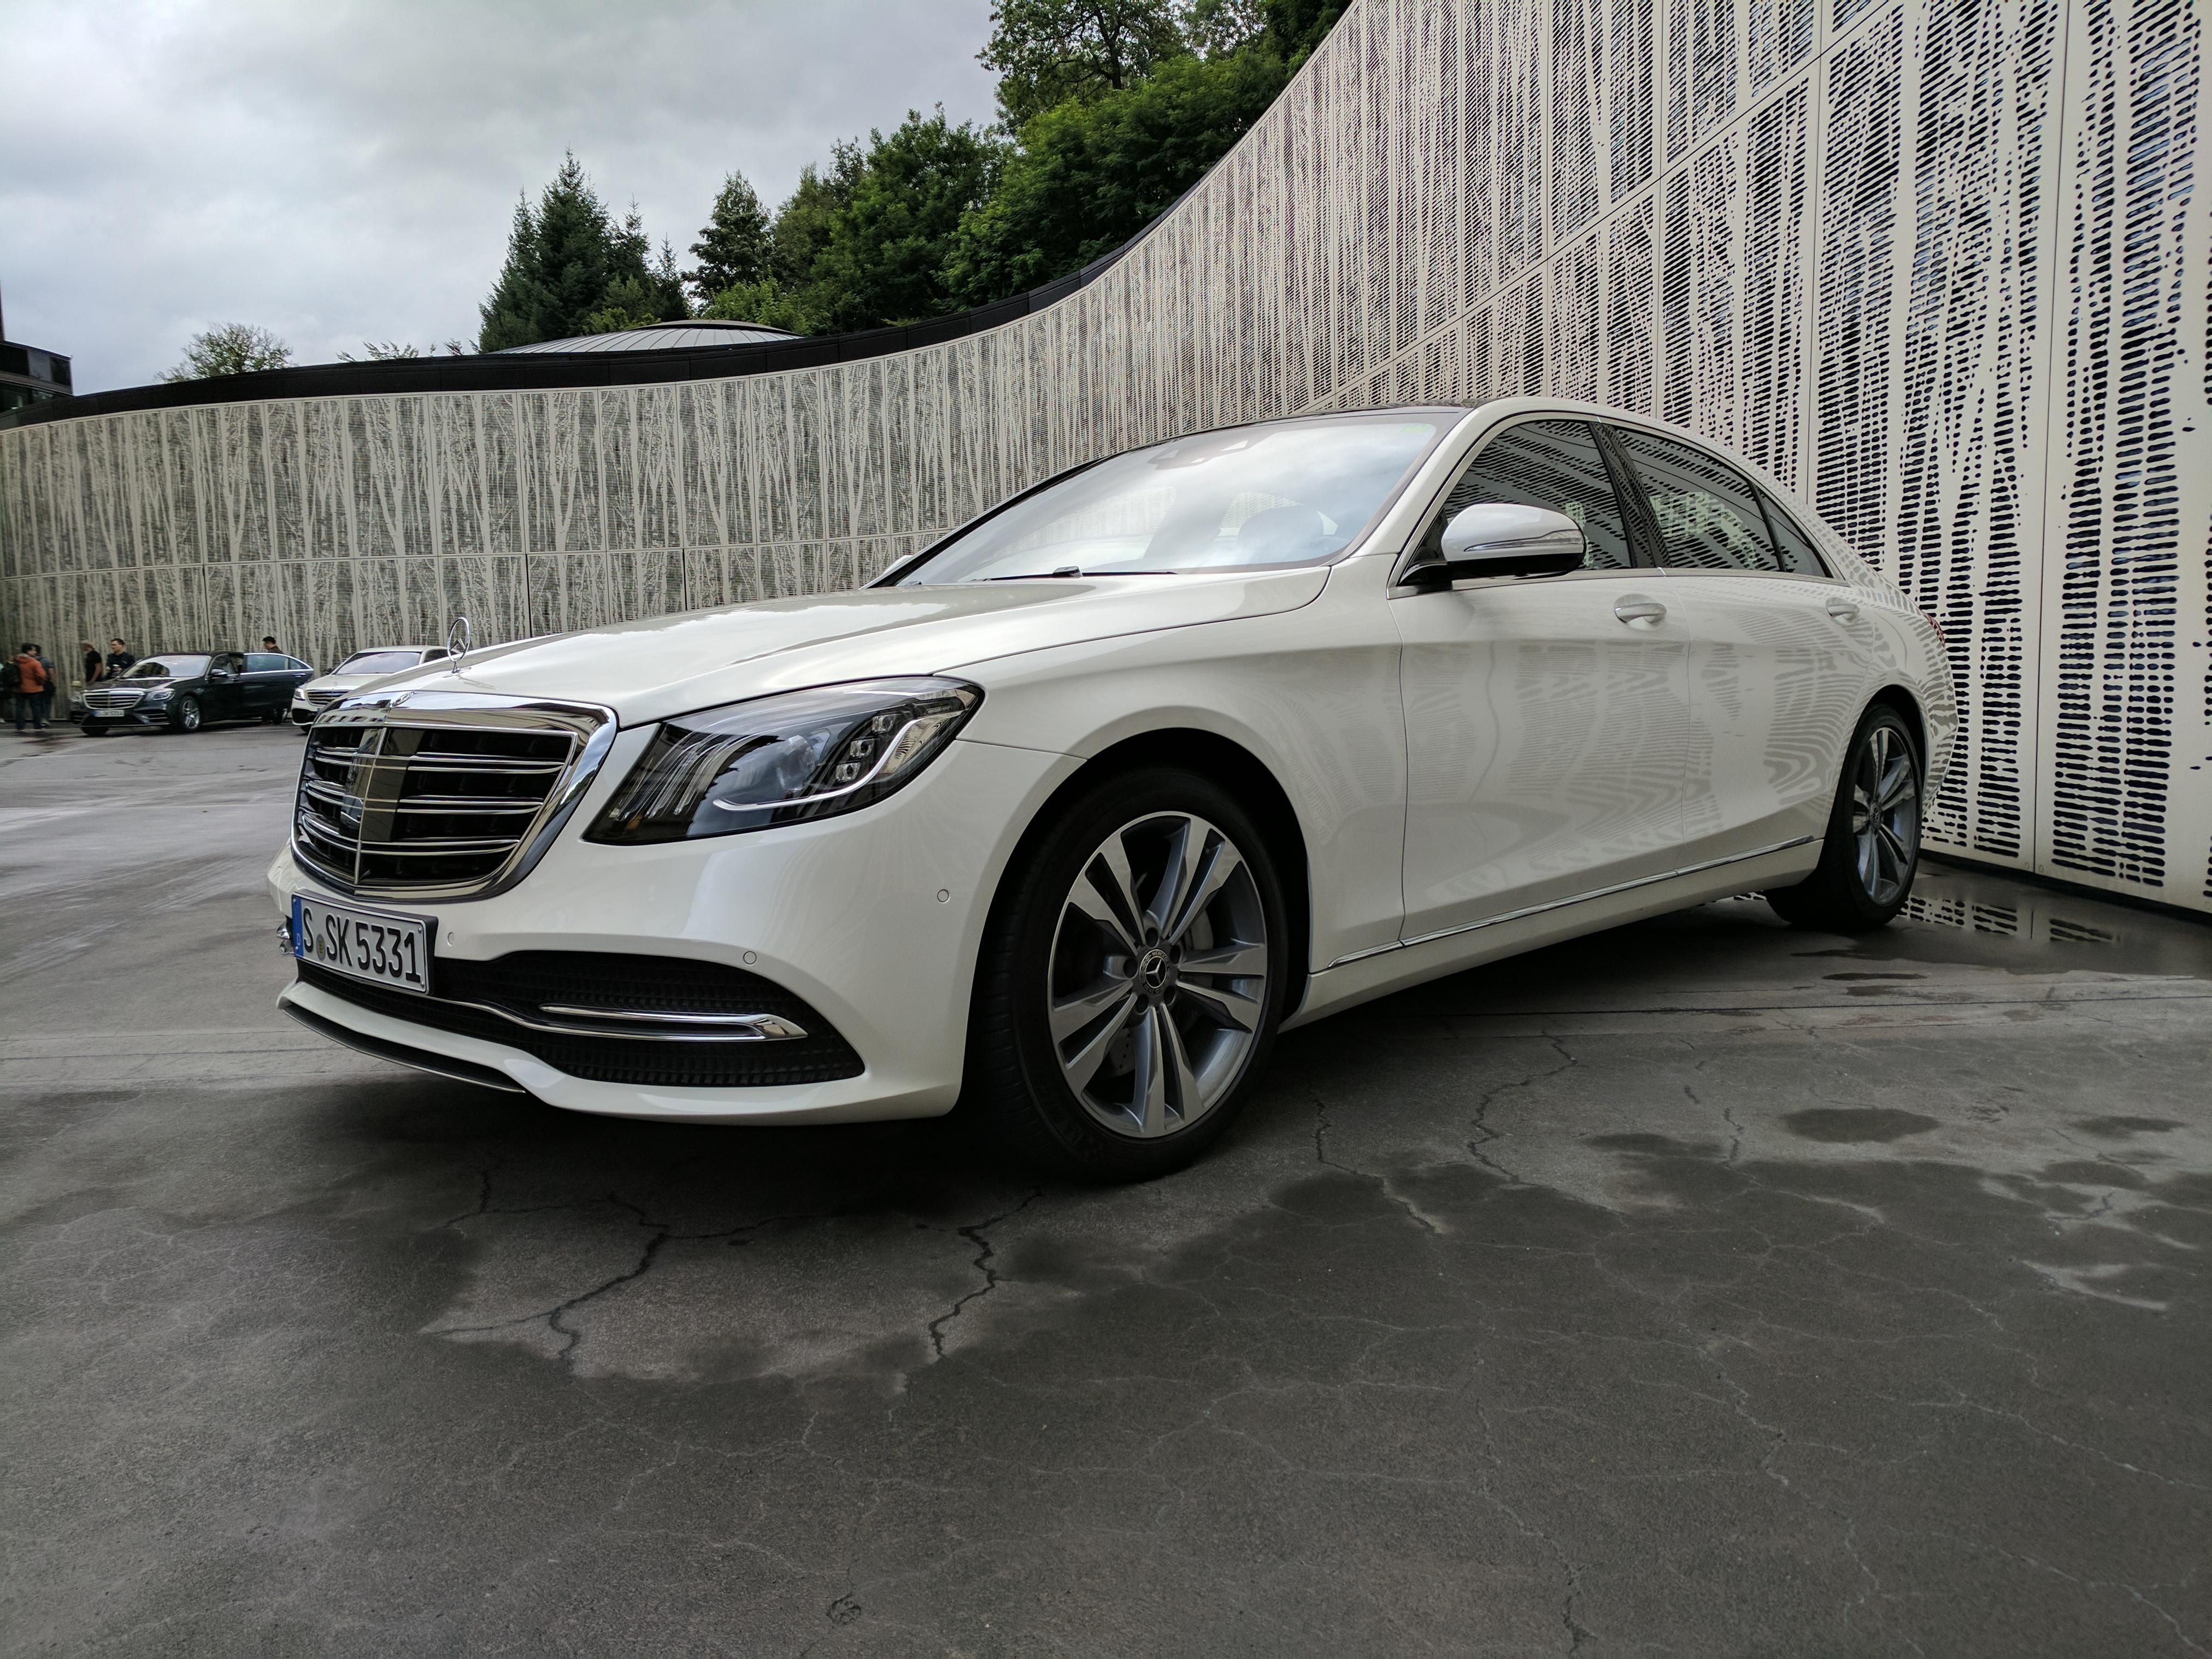 2018 Mercedes Benz S560 Sedan The best s better